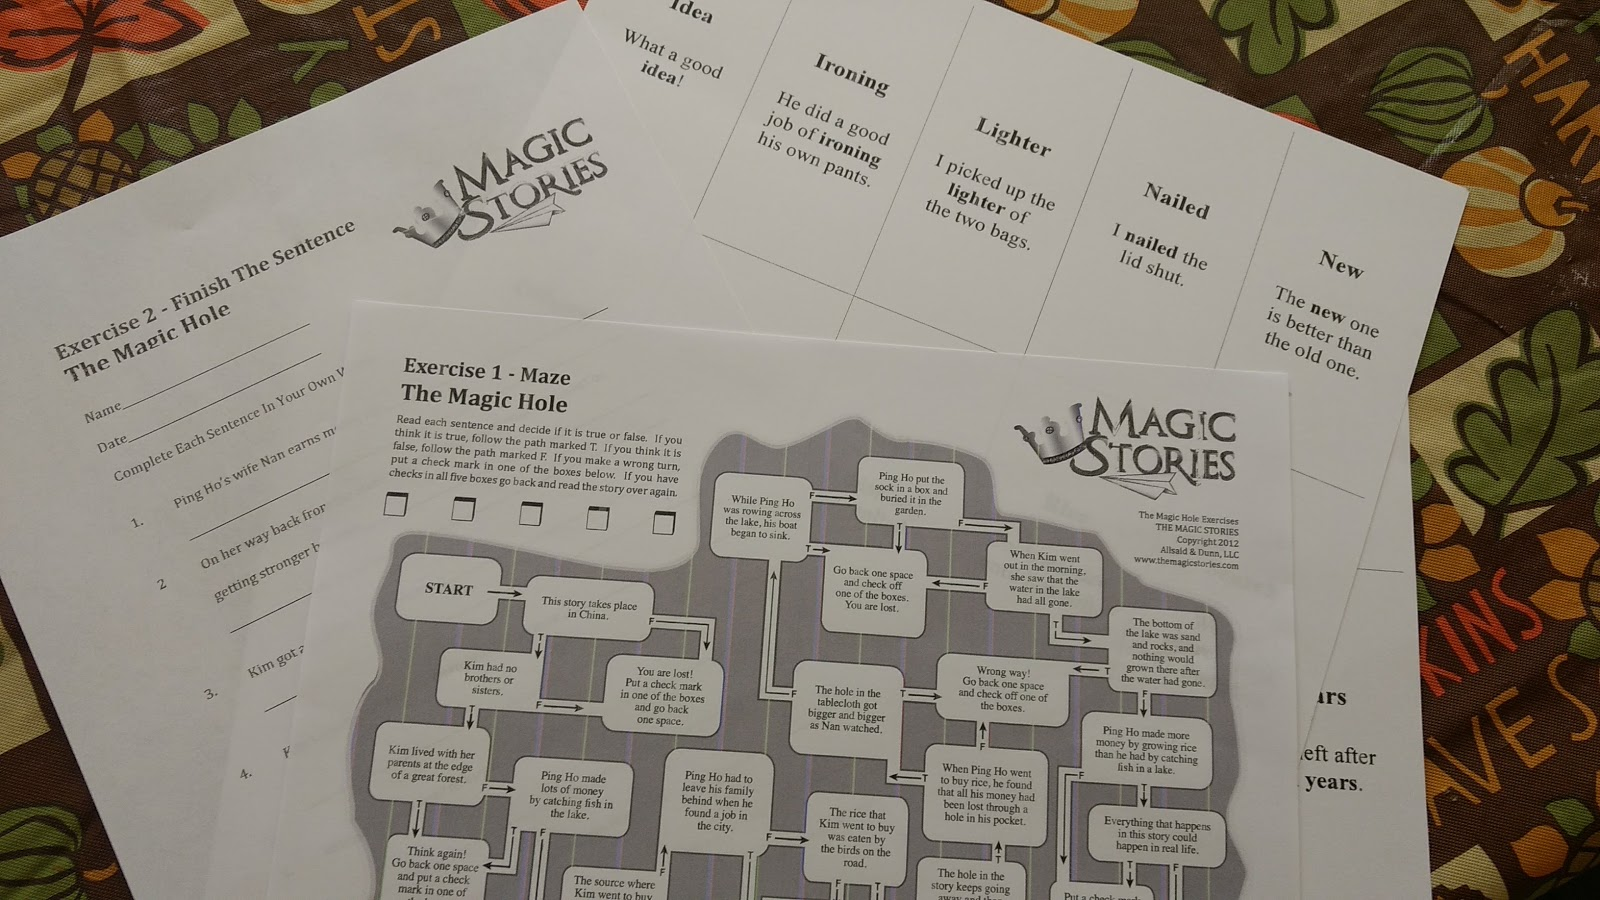 The Magic Stories A Reading Program Review